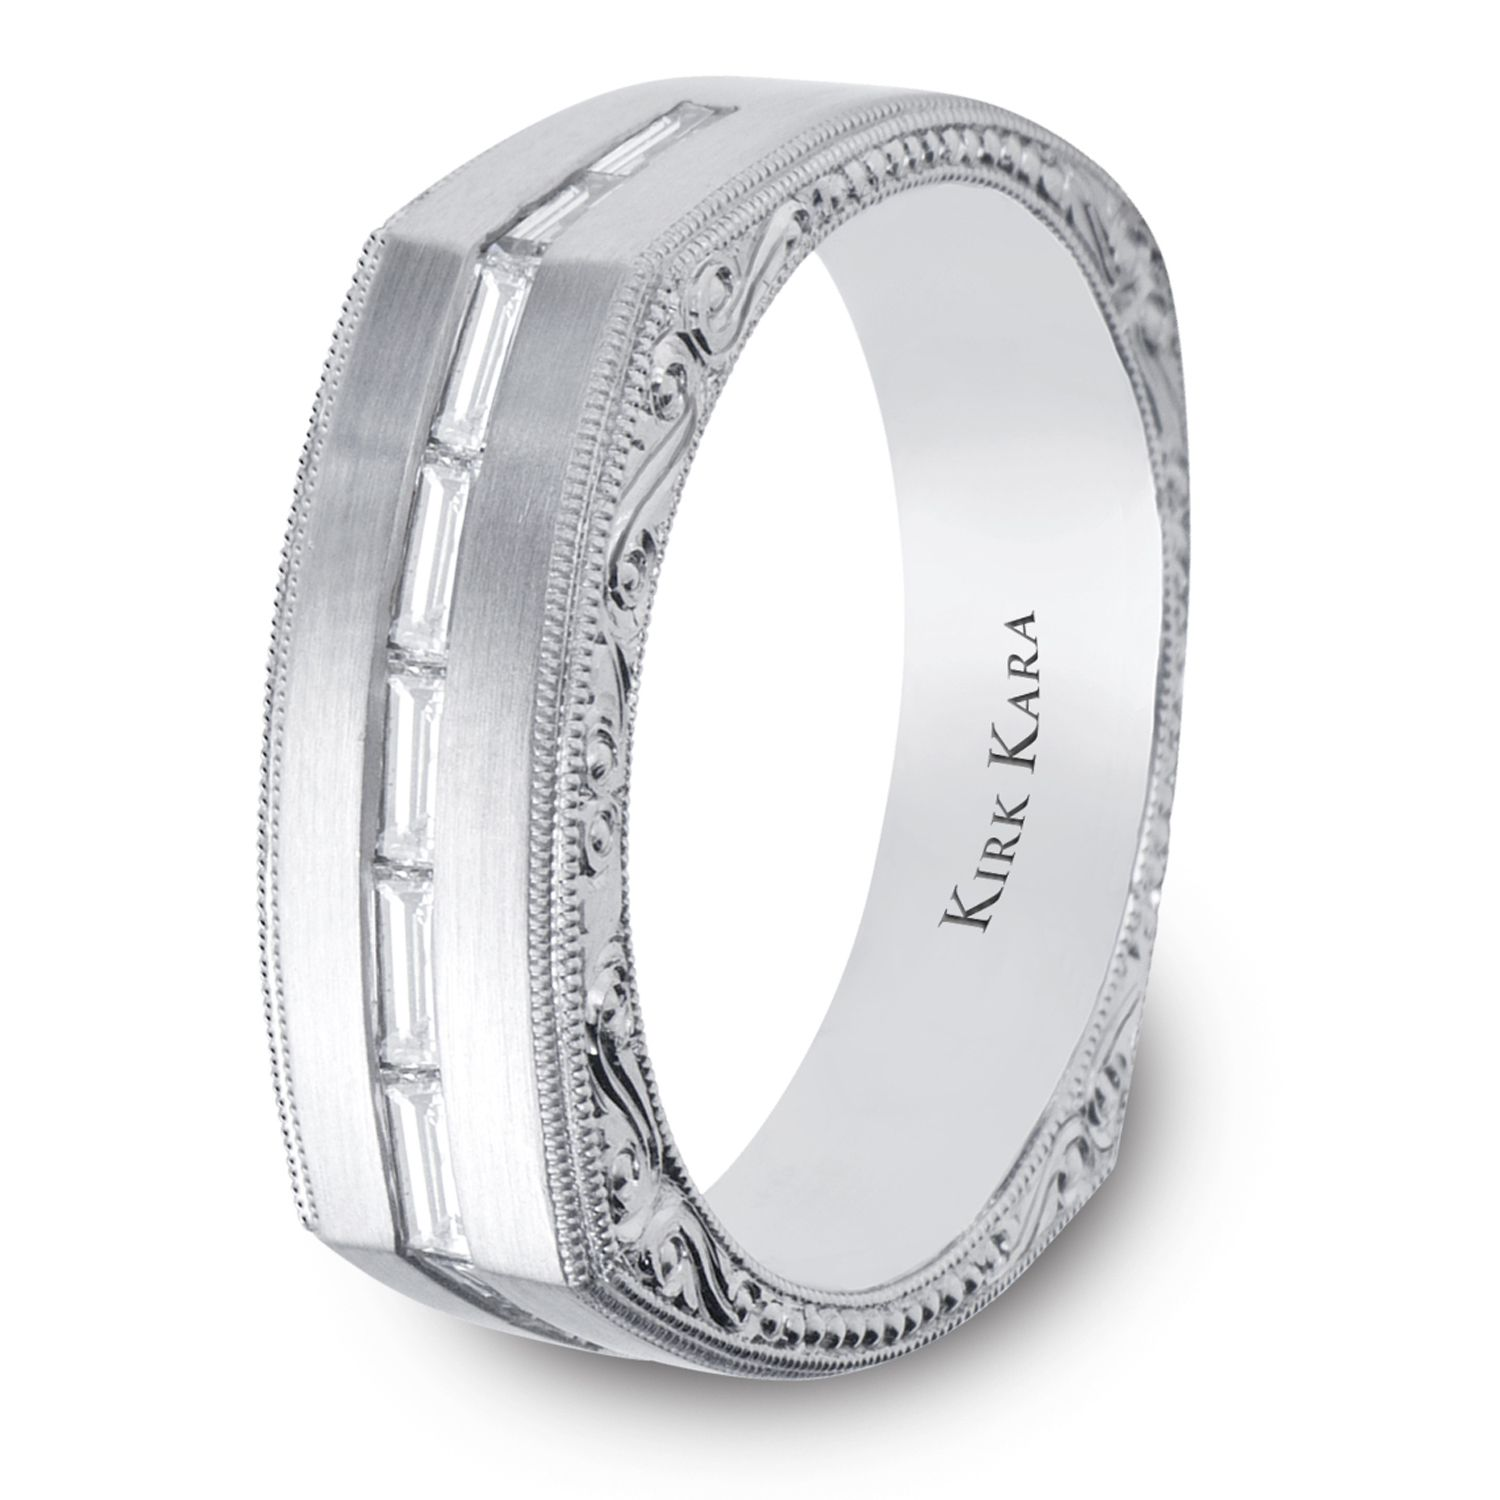 Masculine Yet Sophisticated Men S Wedding Band From The Artin